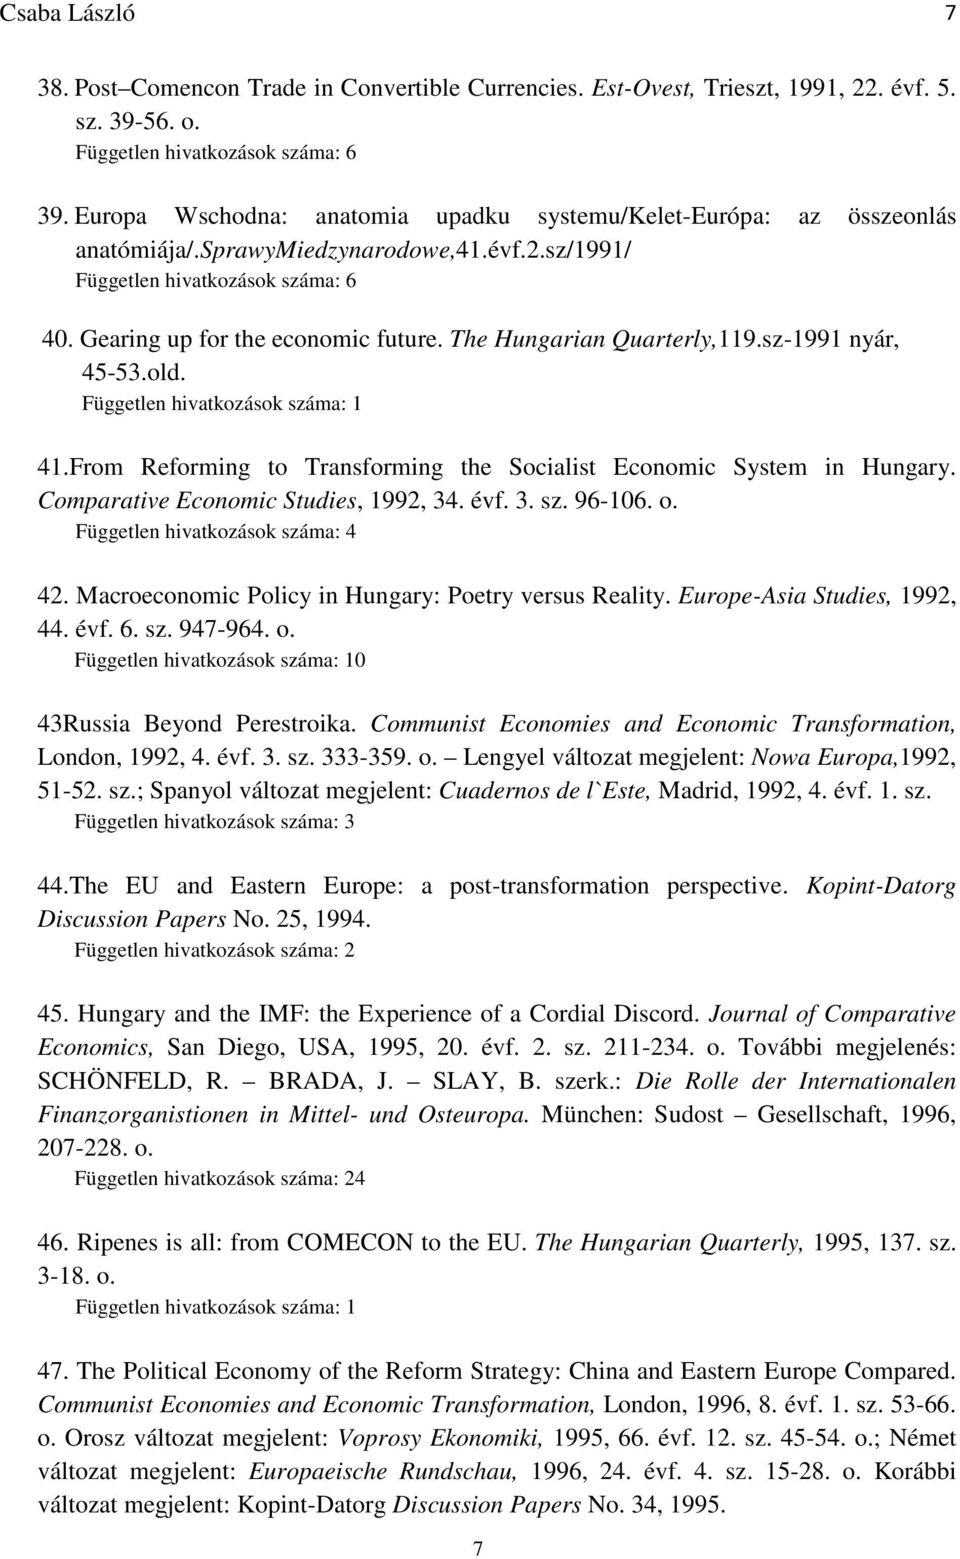 The Hungarian Quarterly,119.sz-1991 nyár, 45-53.old. 41.From Reforming to Transforming the Socialist Economic System in Hungary. Comparative Economic Studies, 1992, 34. évf. 3. sz. 96-106. o.